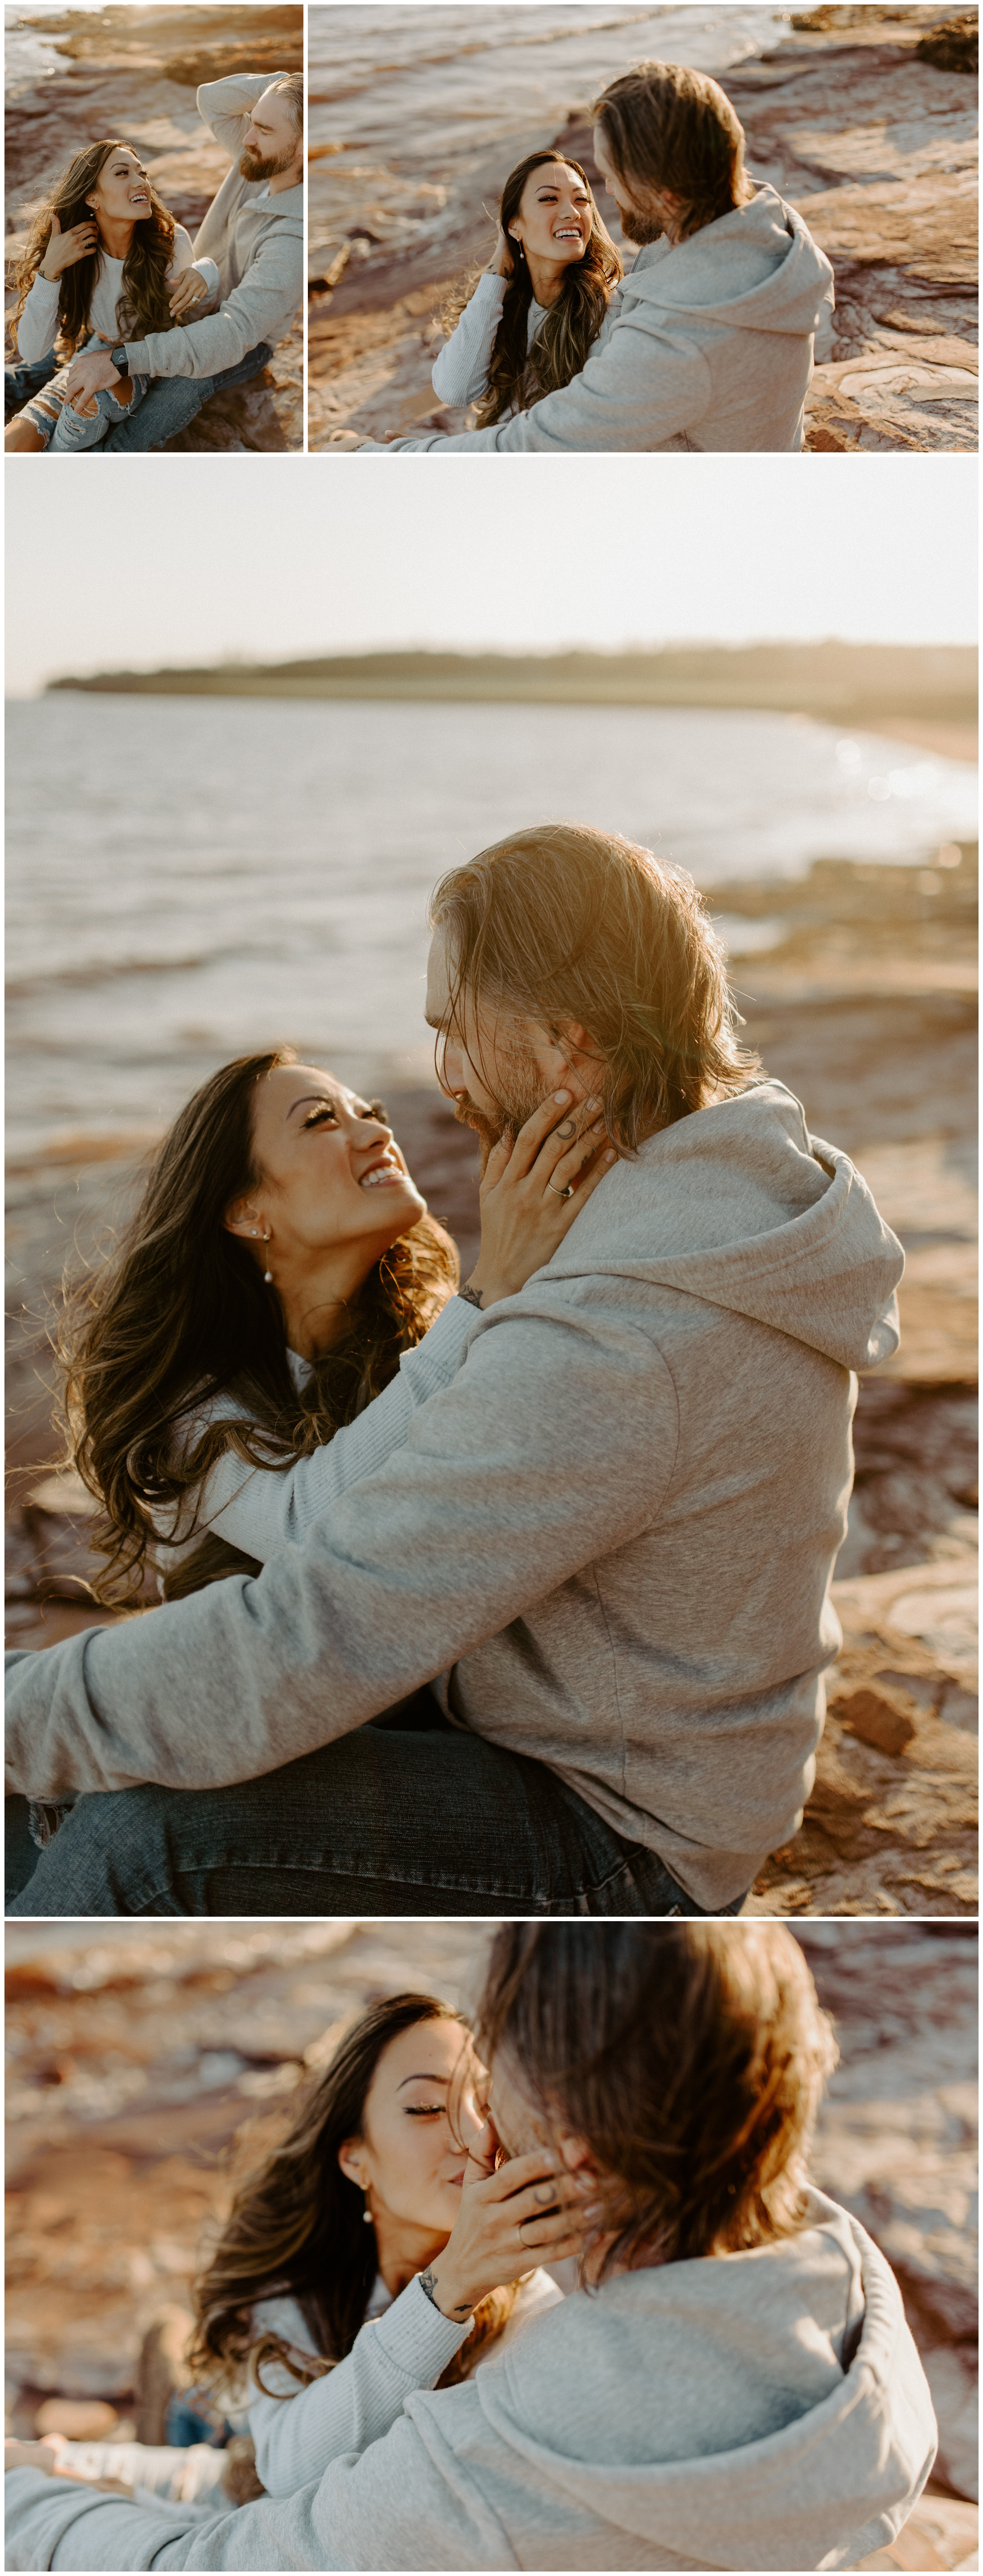 Red Sand Beach Engagements On Prince Edward Island at Sunset | Jessica Heron Images_0006.jpg